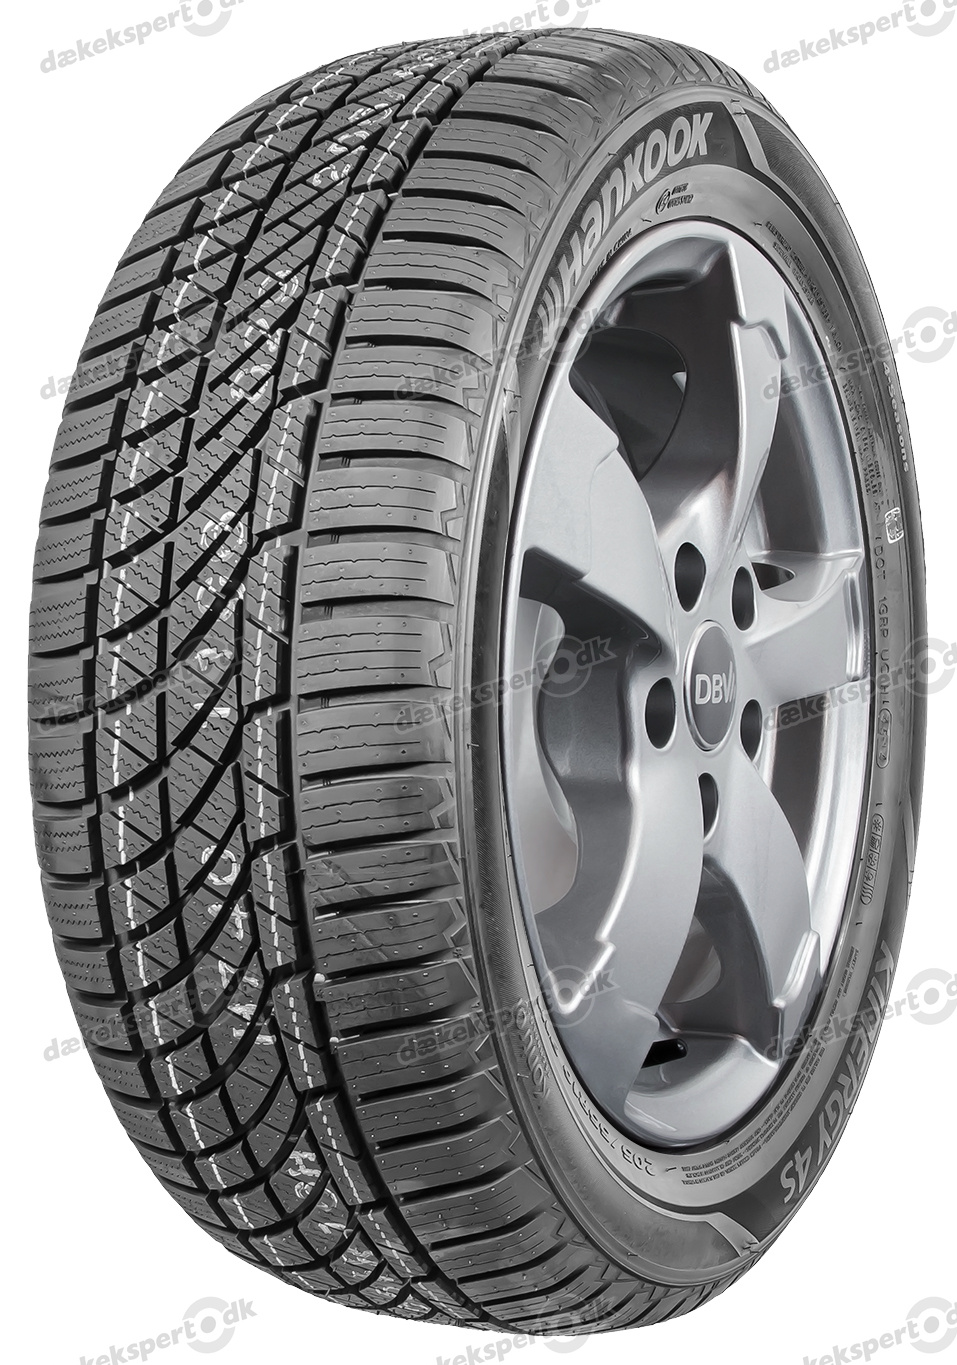 145/70 R13 71T Kinergy 4S H740 SP M+S  Kinergy 4S H740 SP M+S